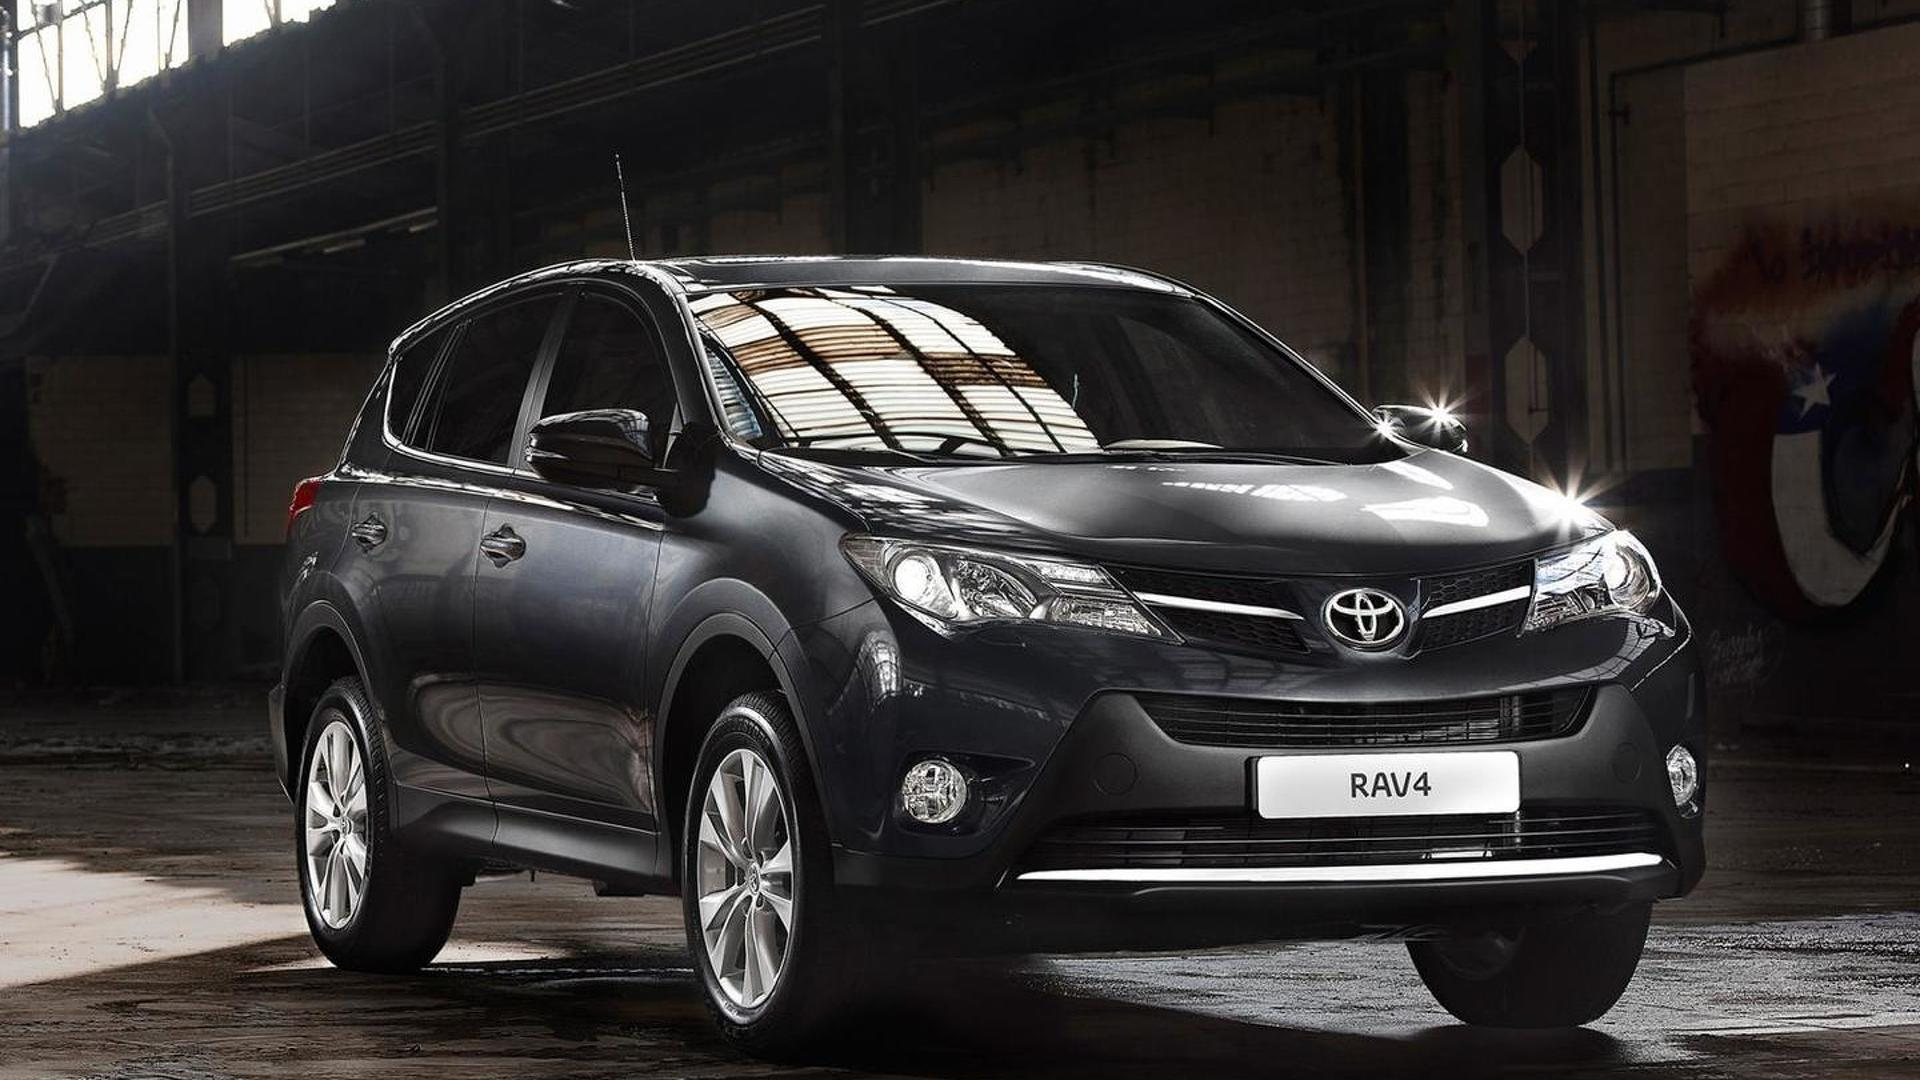 Toyota considering a new crossover to slot below the RAV4 - report